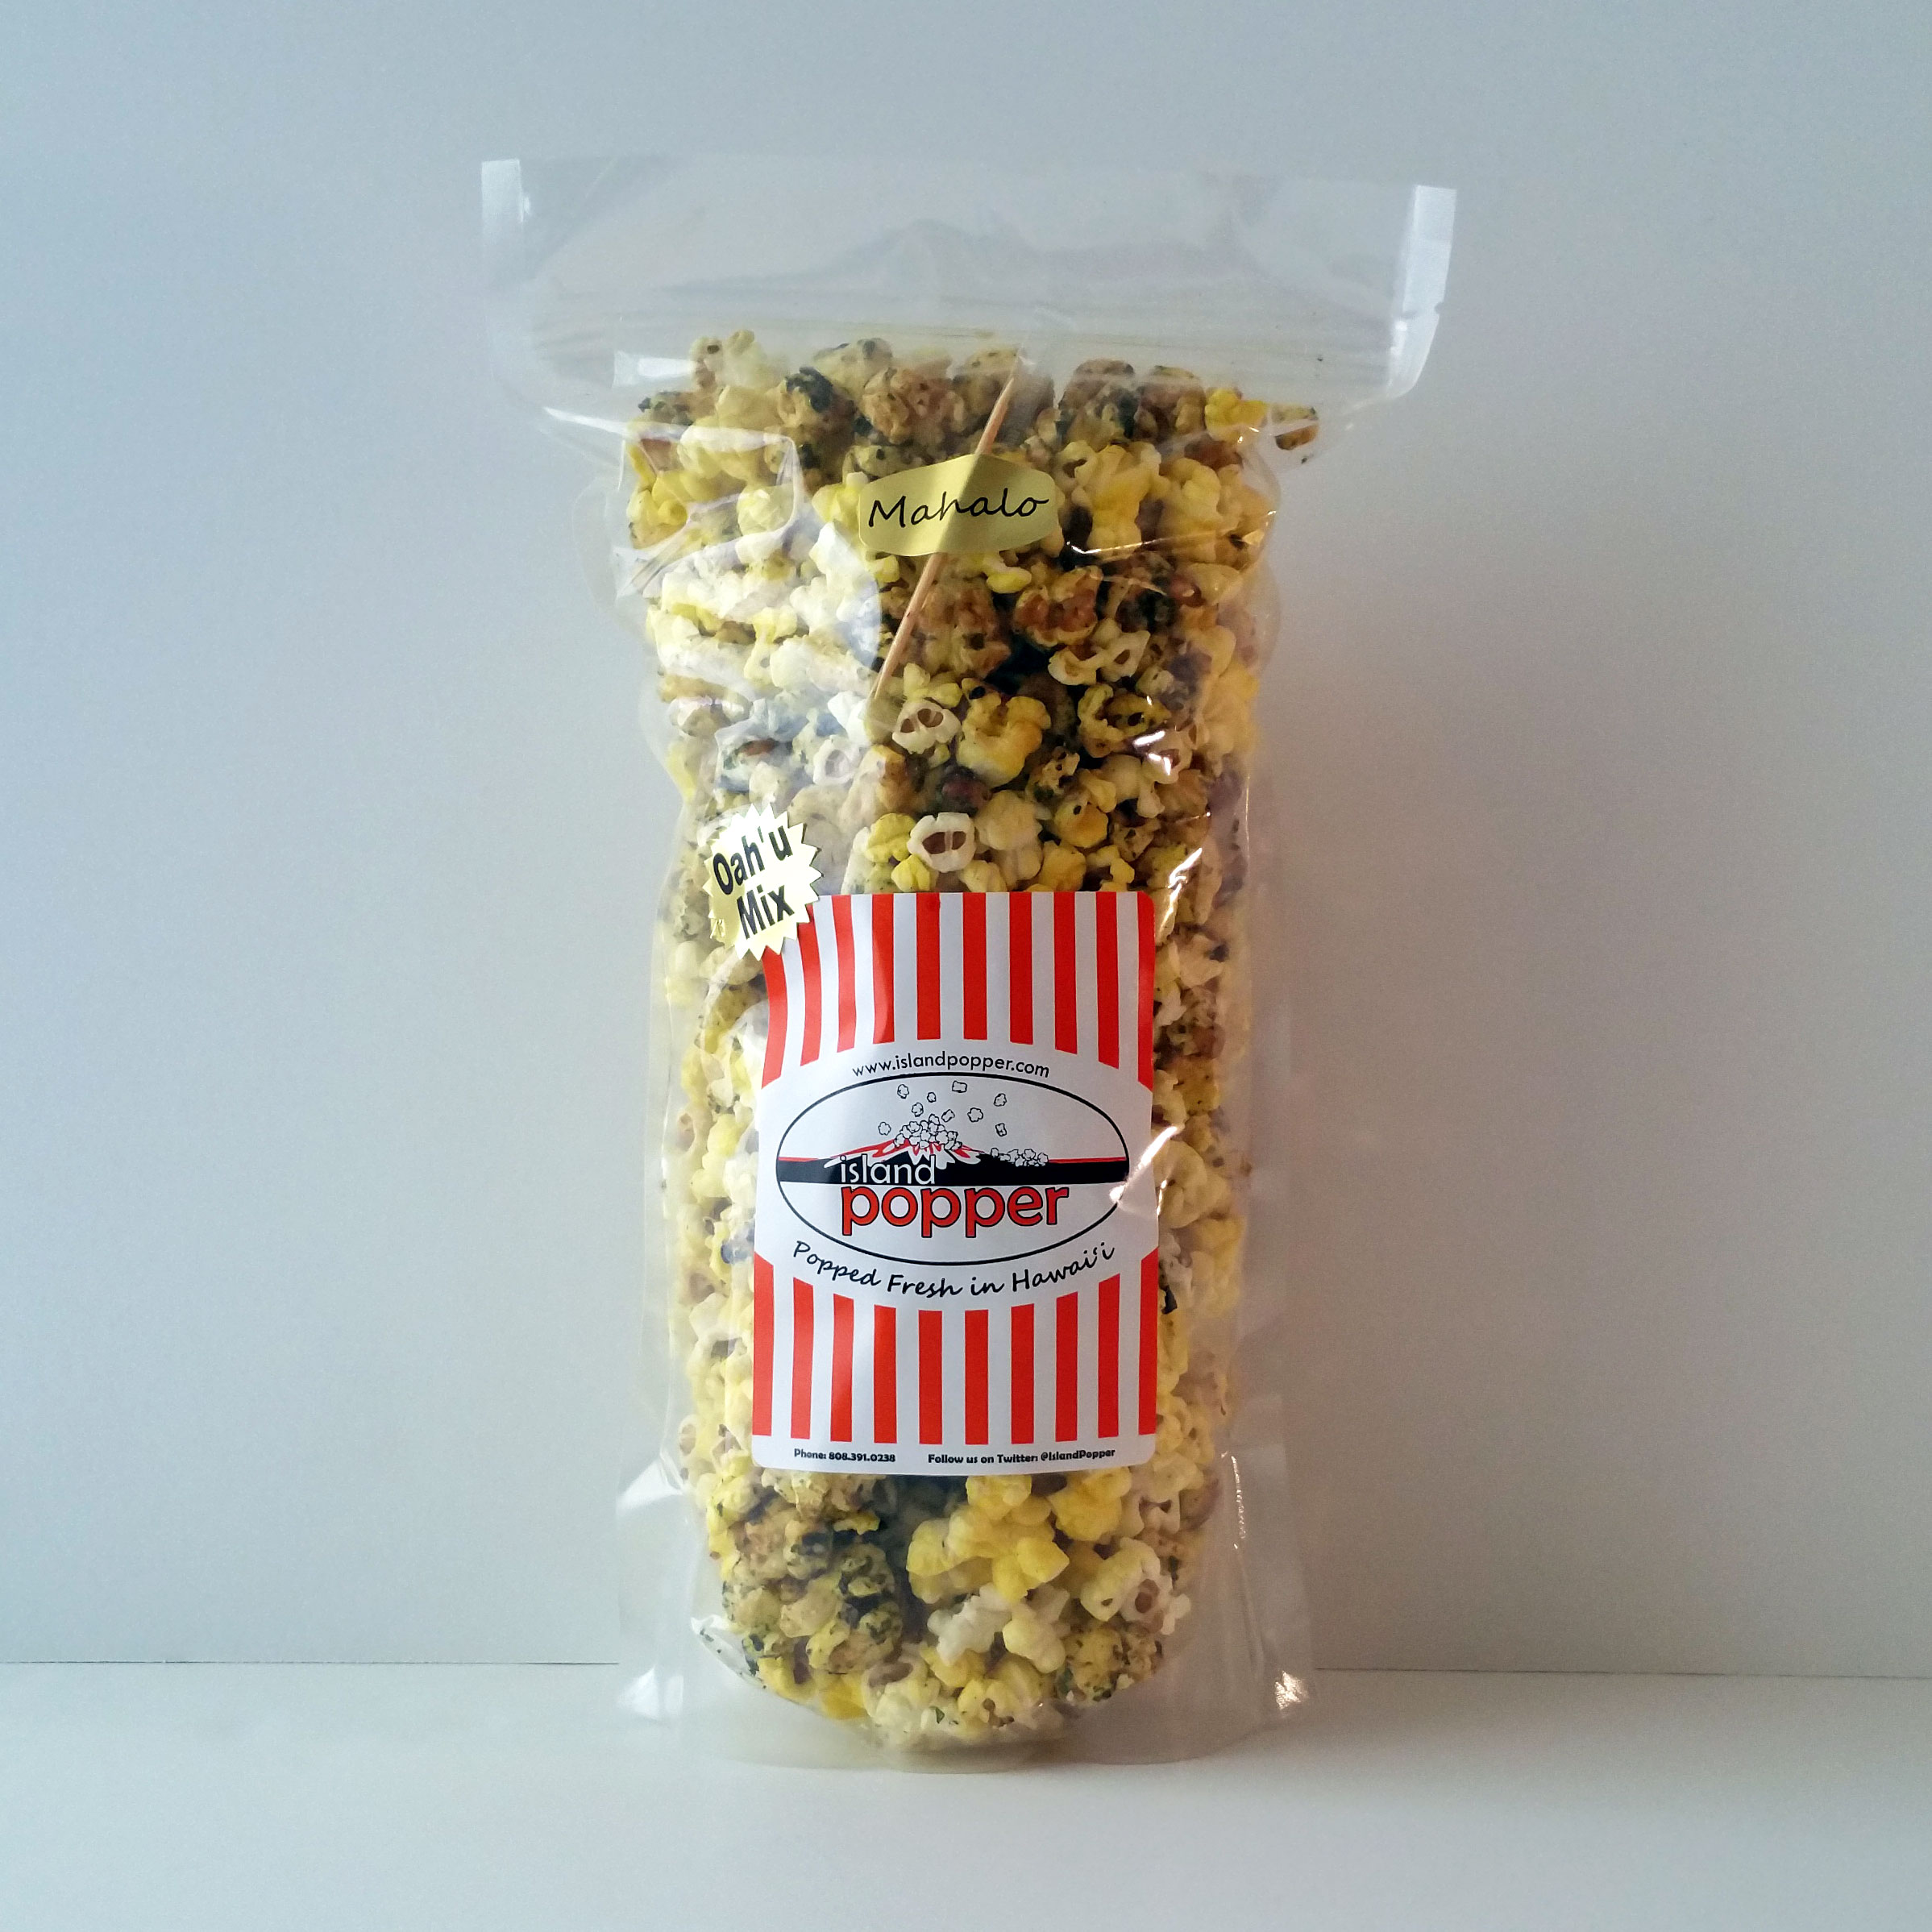 Oahu MixSweet and crisp Original Furikake mixed with our classic Organic Butter popcorn